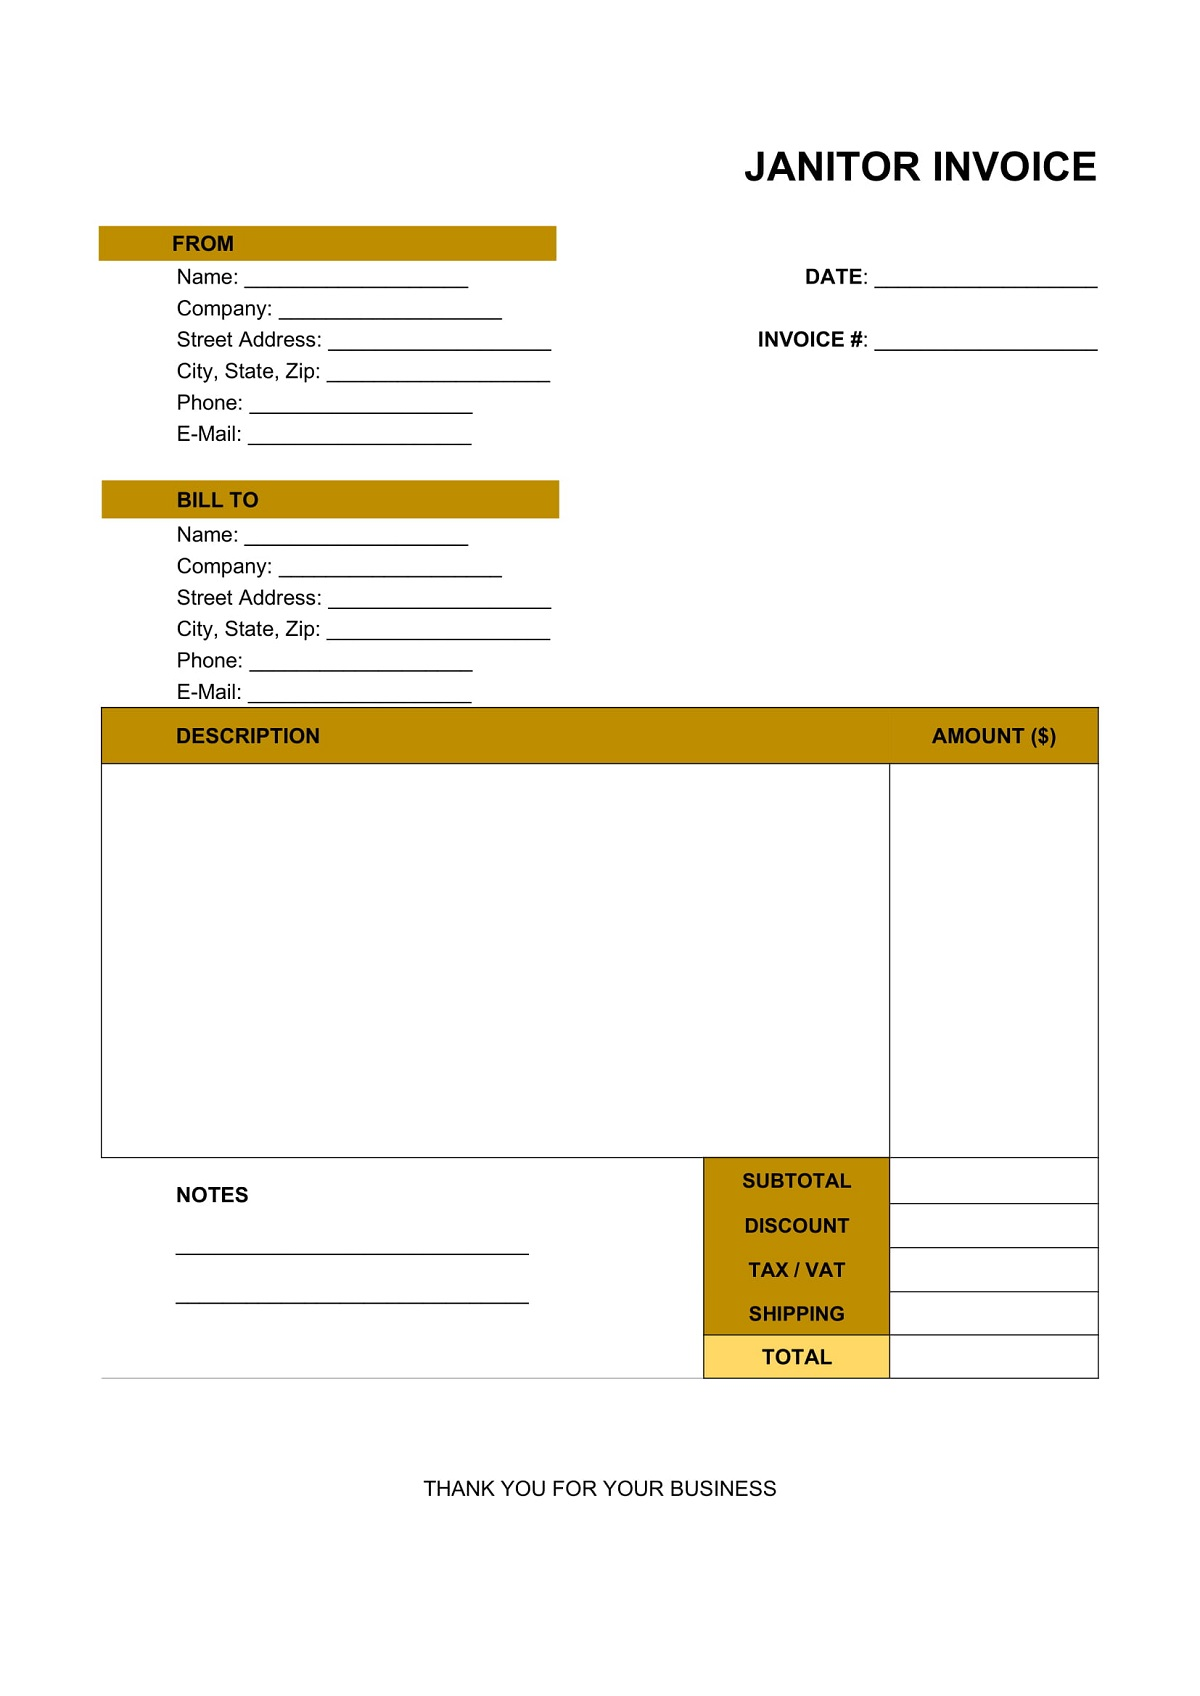 Janitor Invoice Template Excel Format